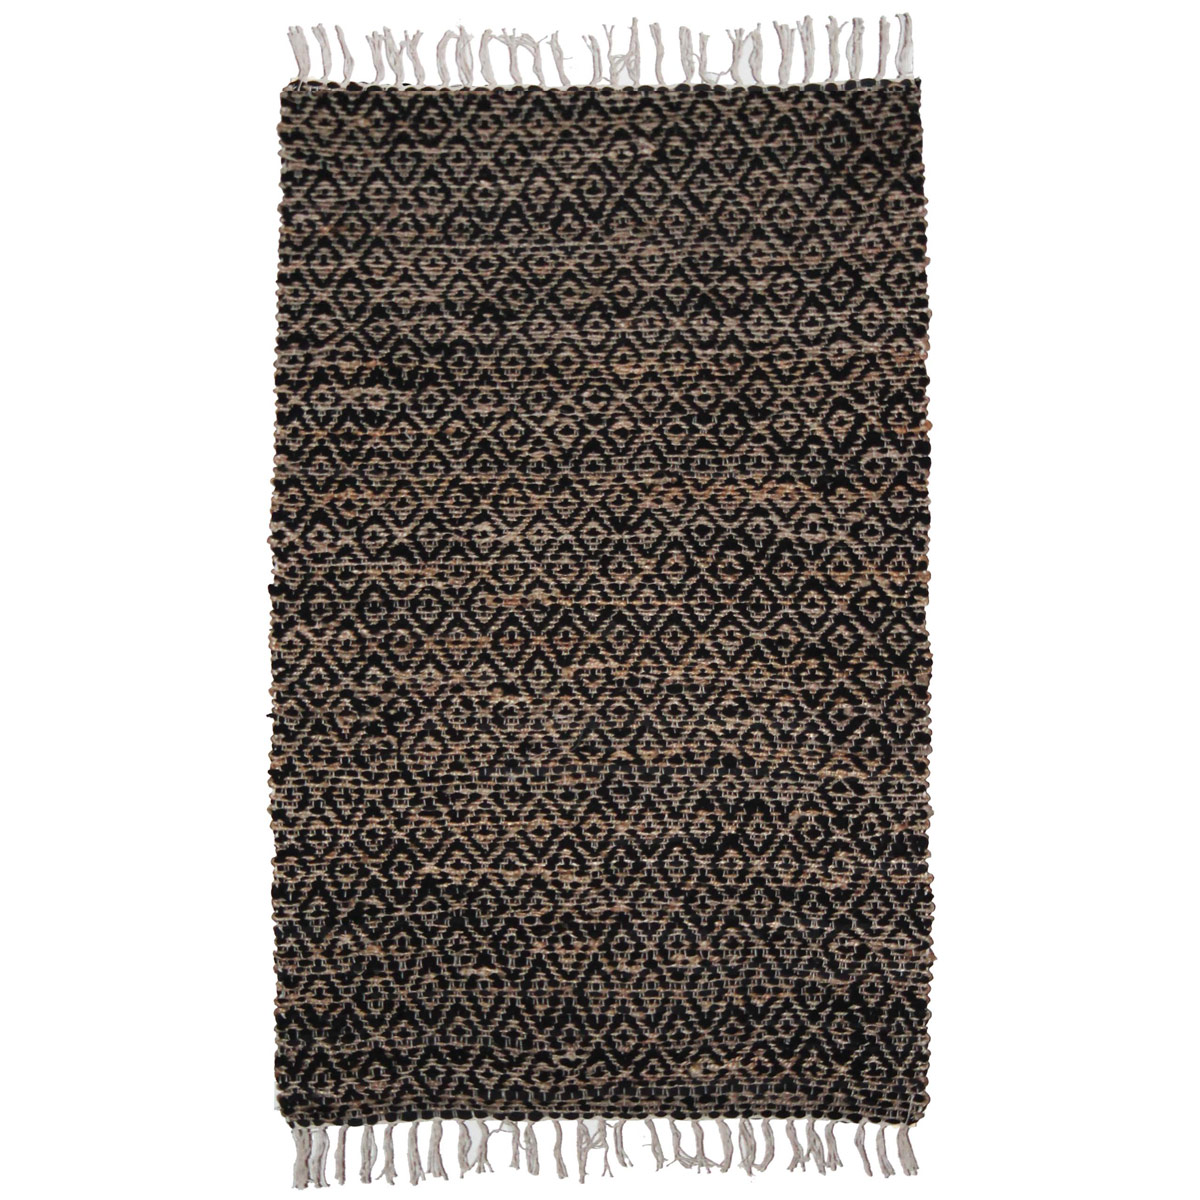 Black Hemp Diamond Rug - 4 x 6